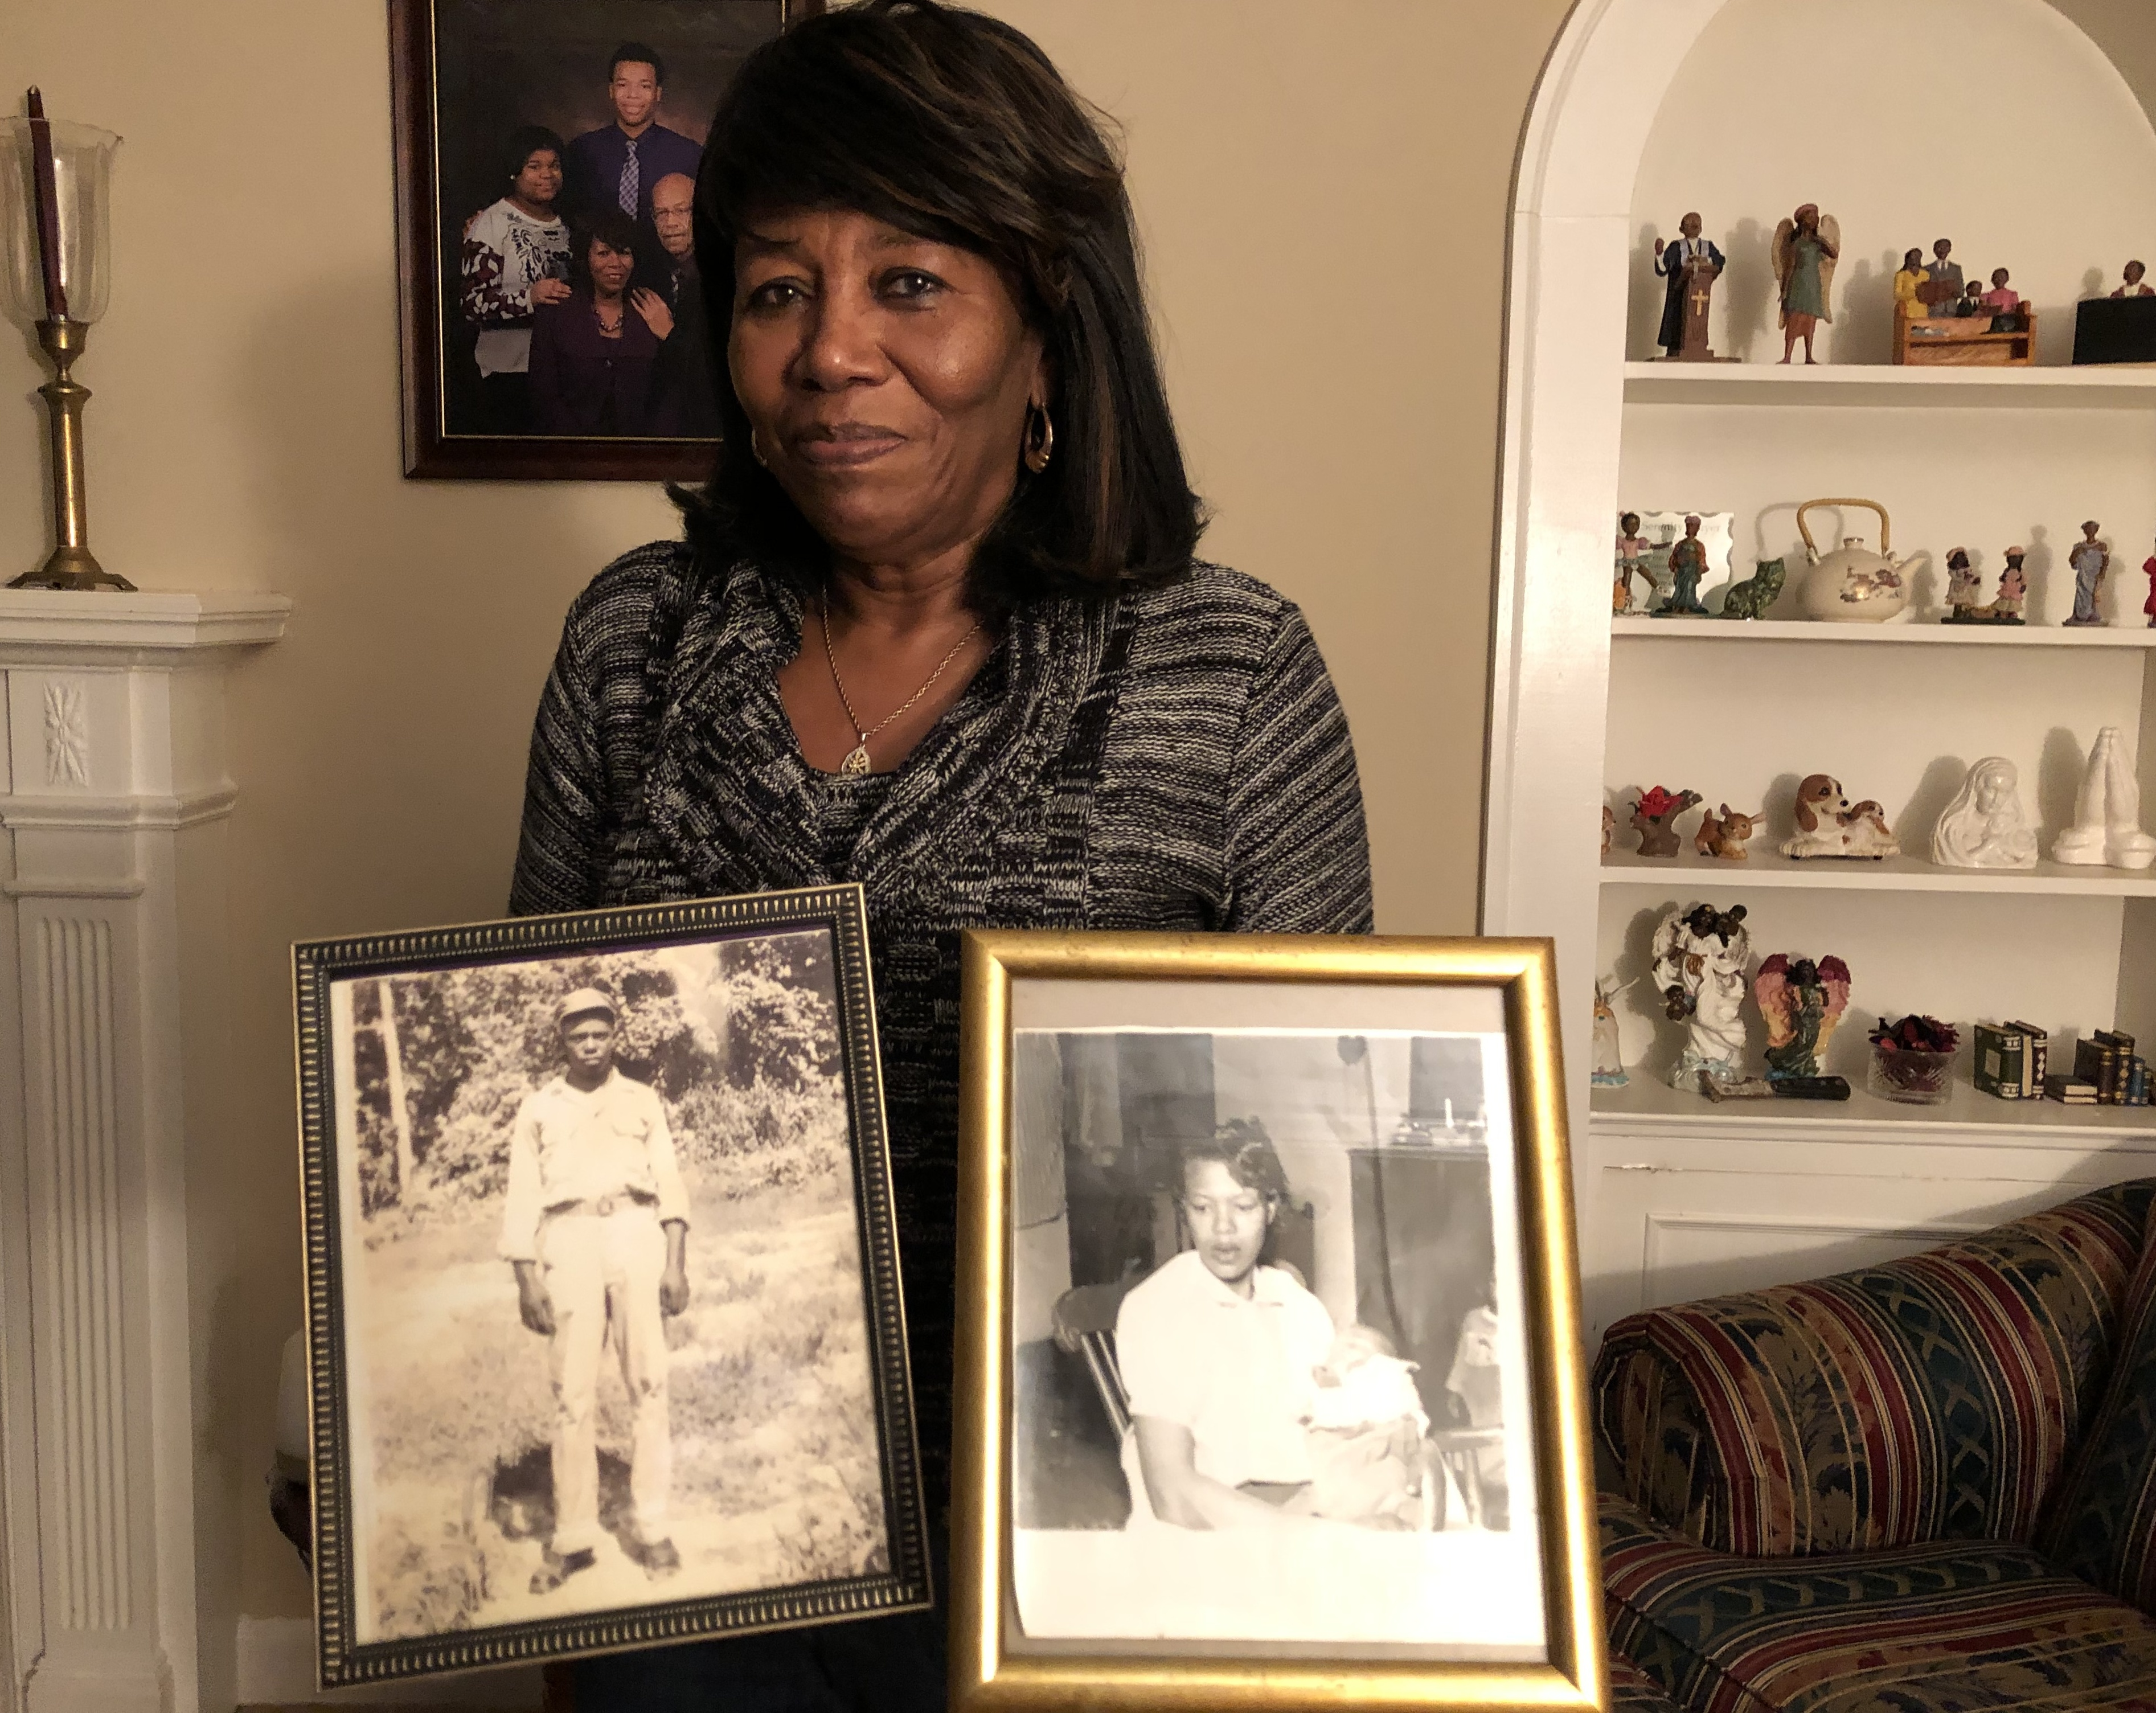 Clinton Melton A Mississippi Man Who Was Killed Mere Months After Emmett Till Code Switch Npr